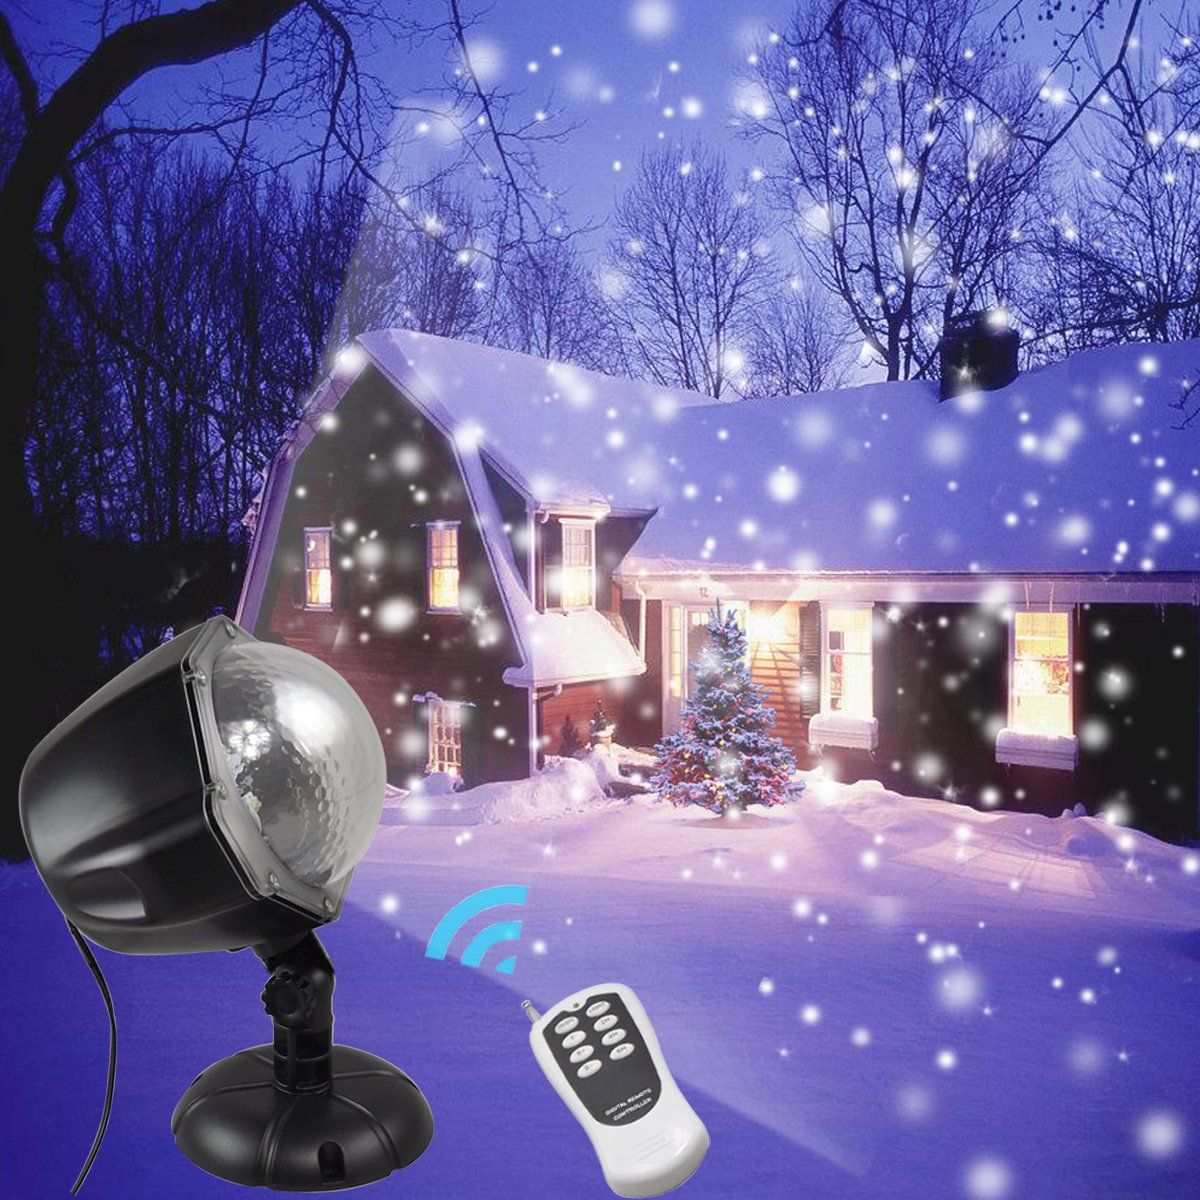 GESIMEI Led Christmas Light Projector Outdoor Decorative Light Show ...